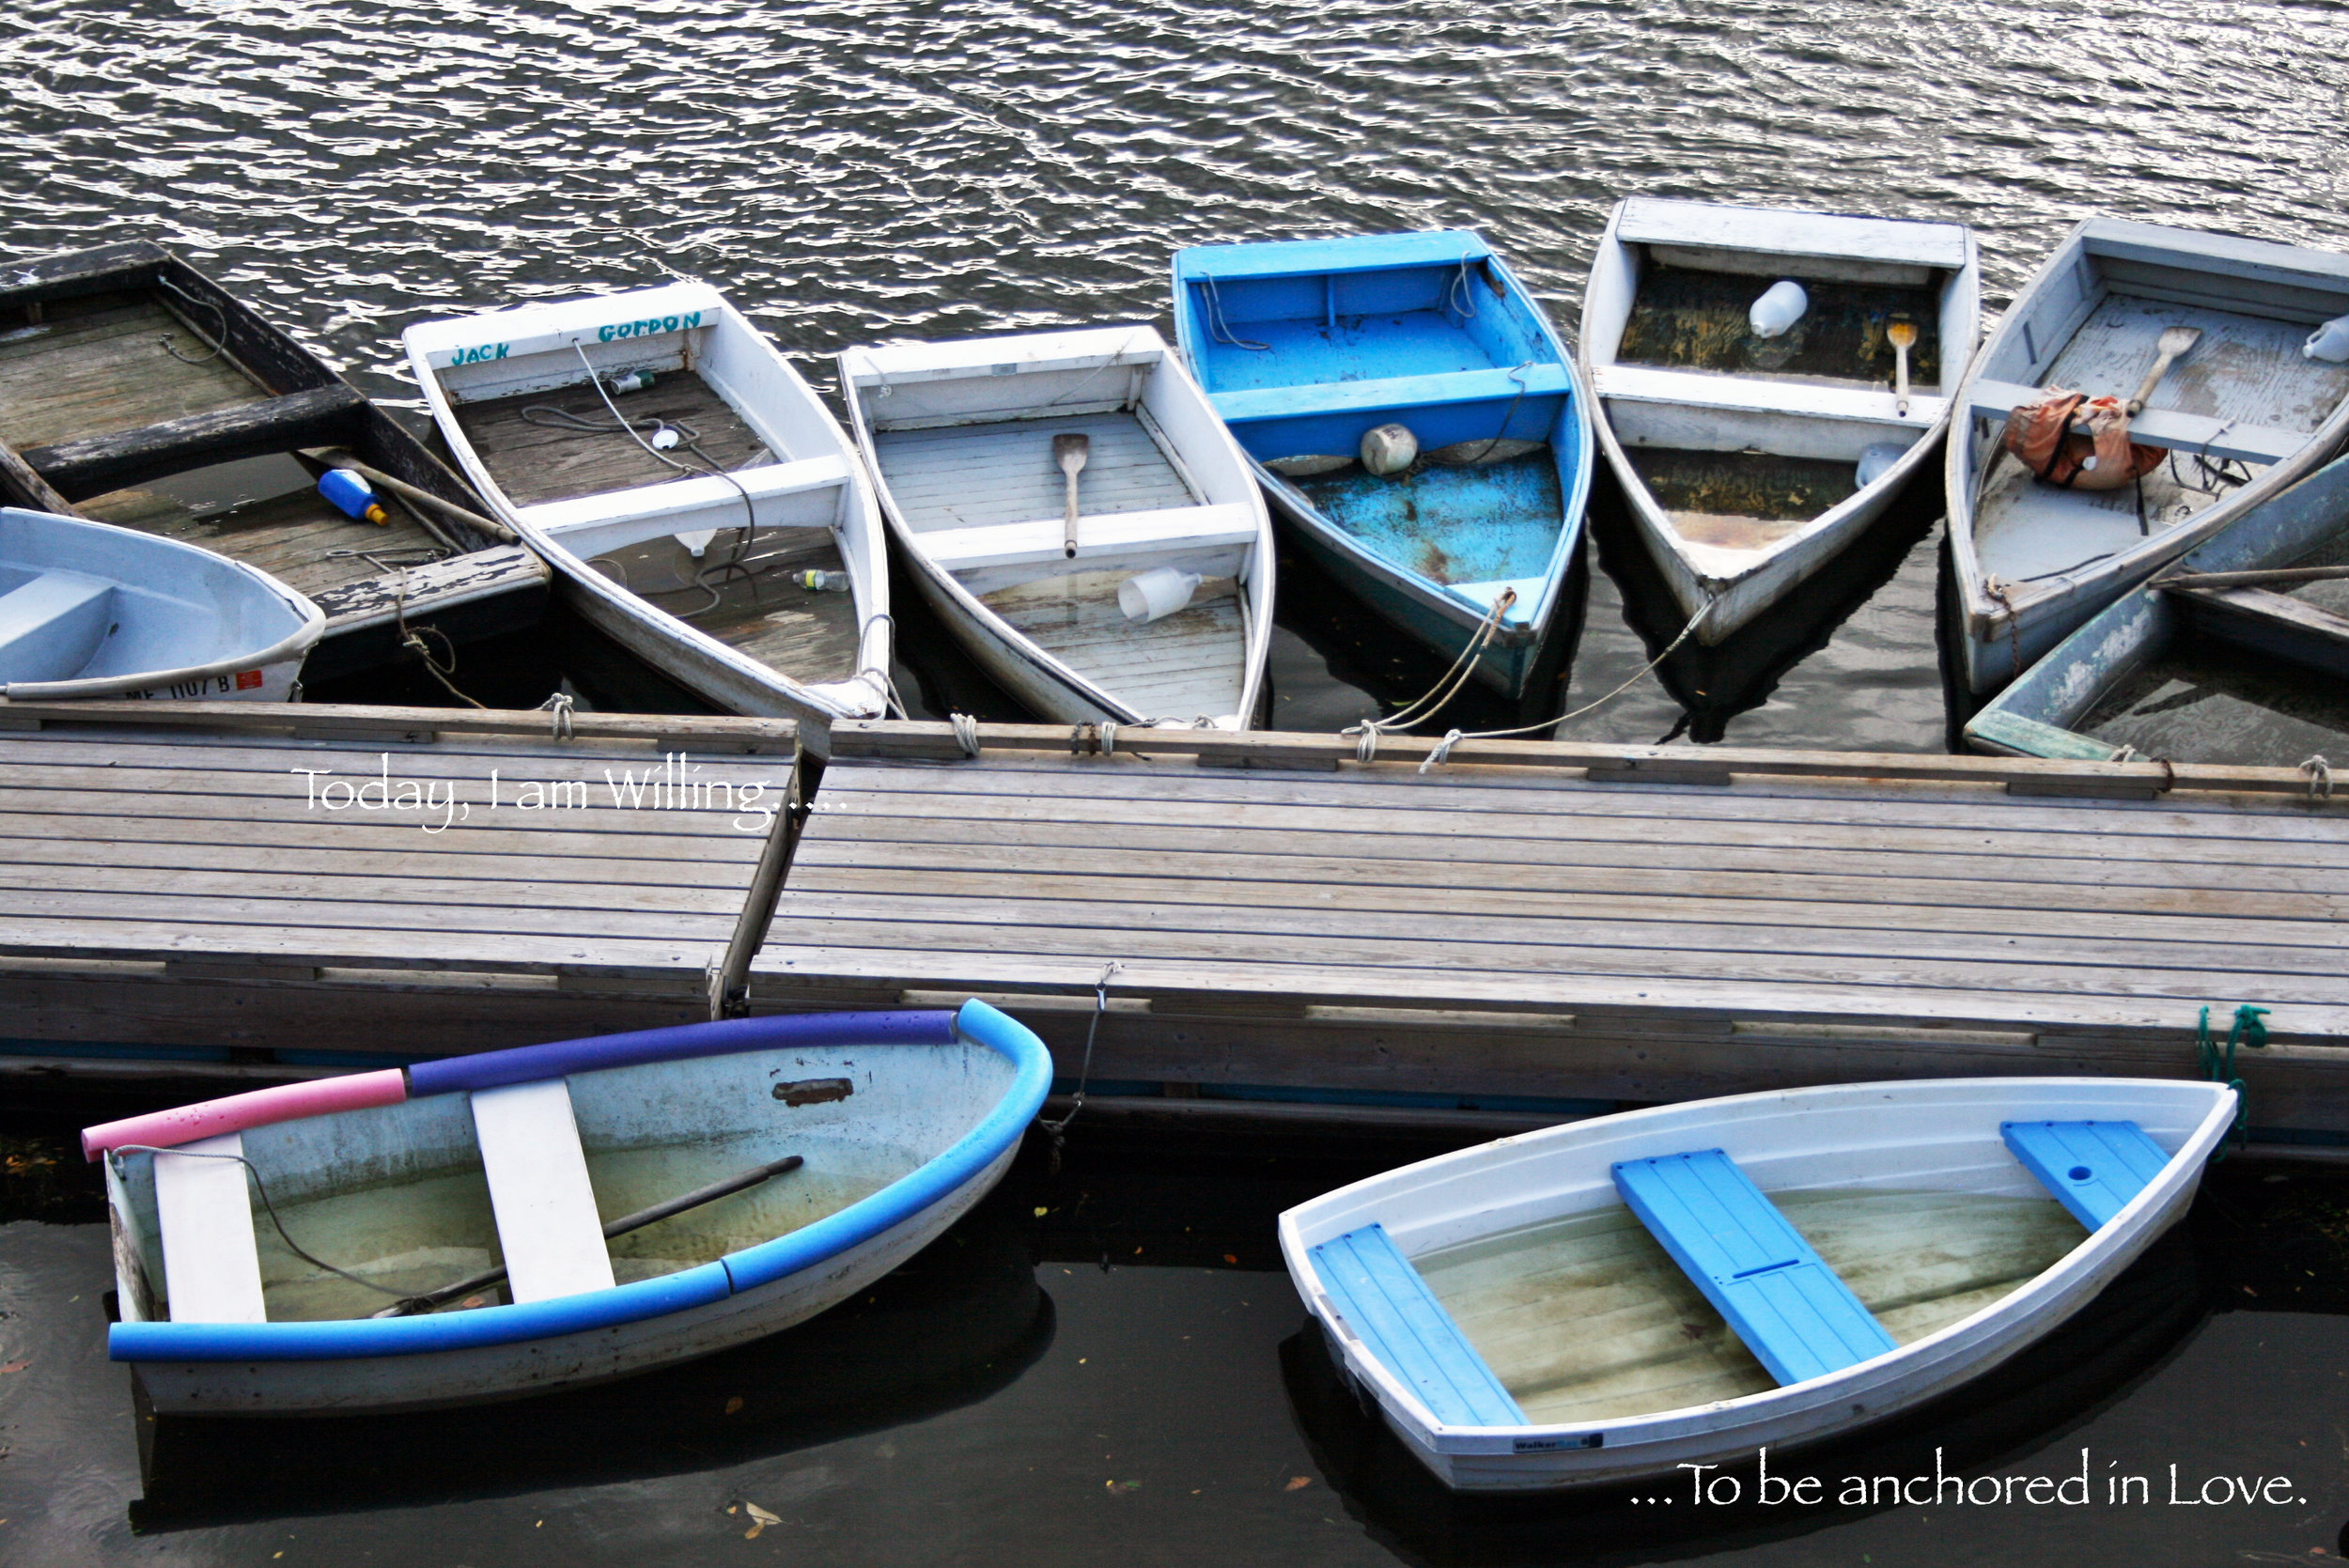 Boats in the cove_Anchored in Love.jpg